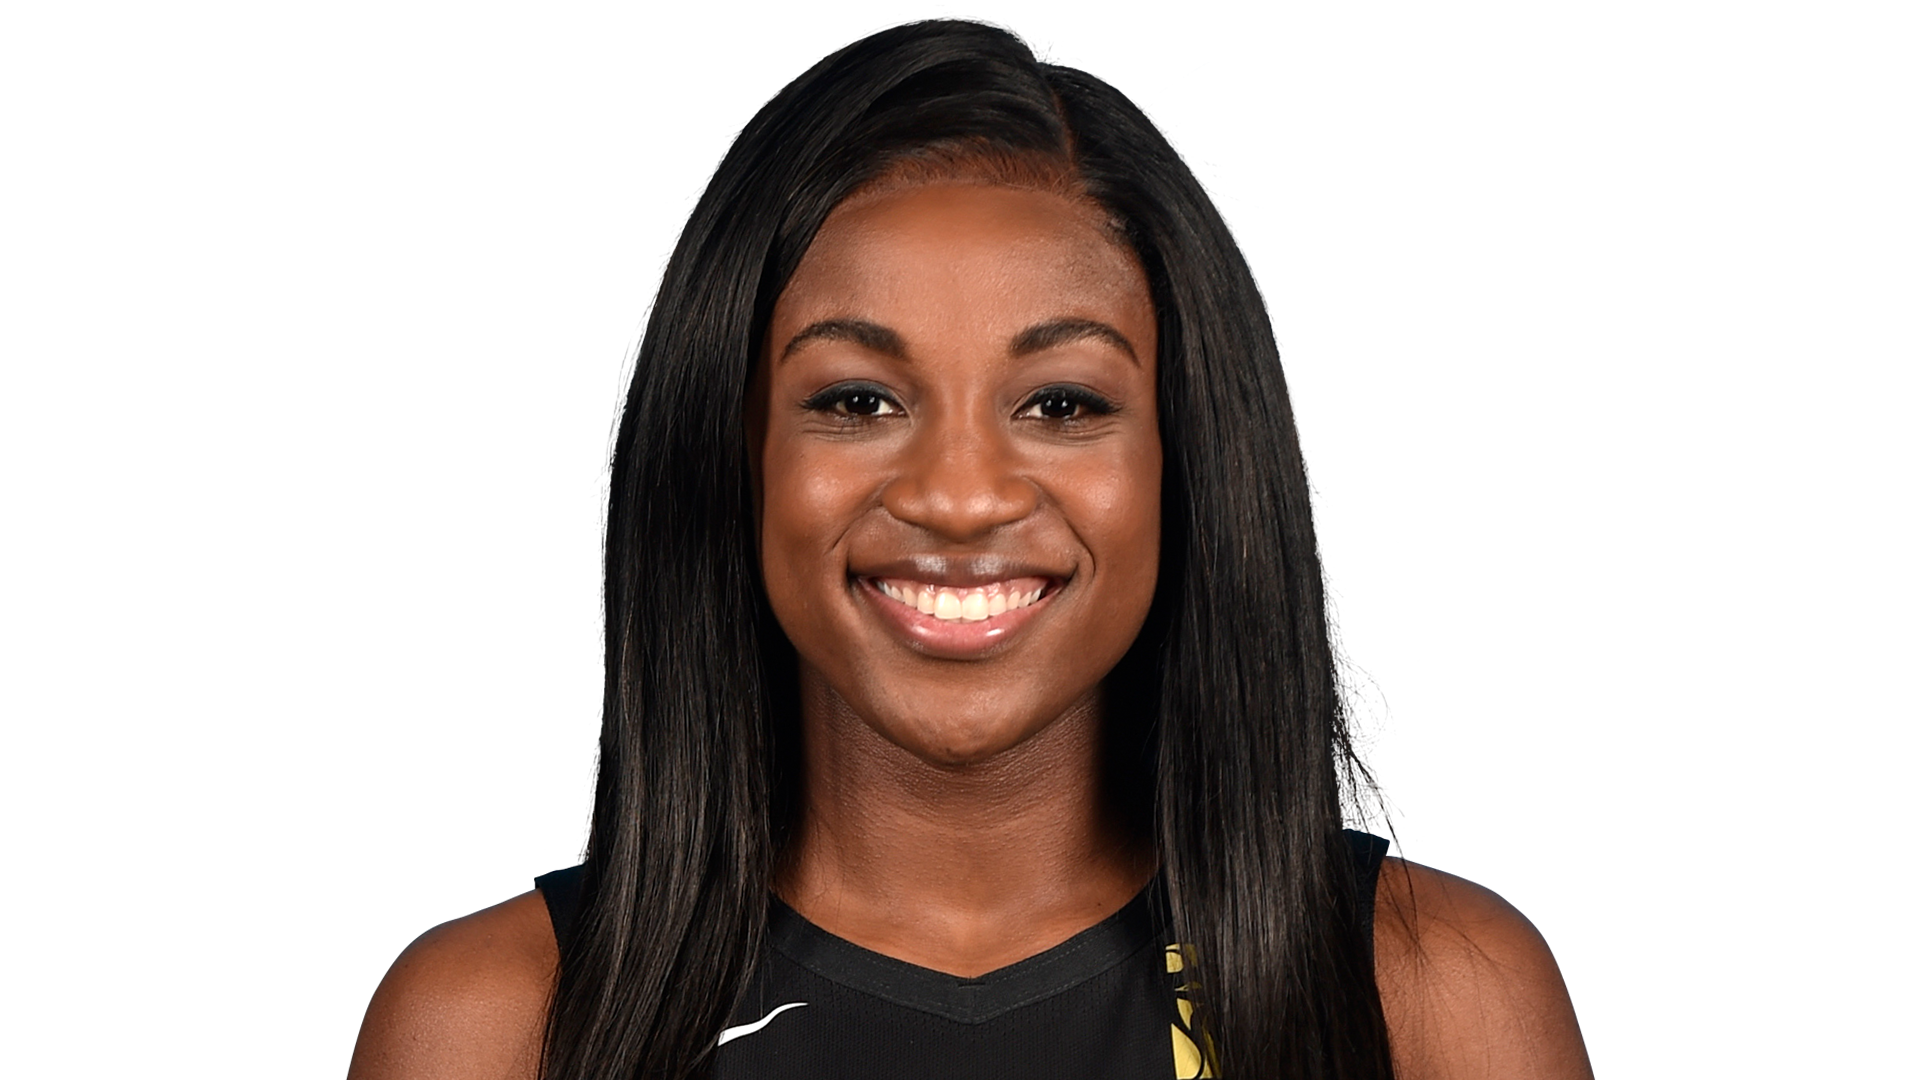 PUMA expands its WNBA player roster adding Jackie Young and Katie Lou Samuelson